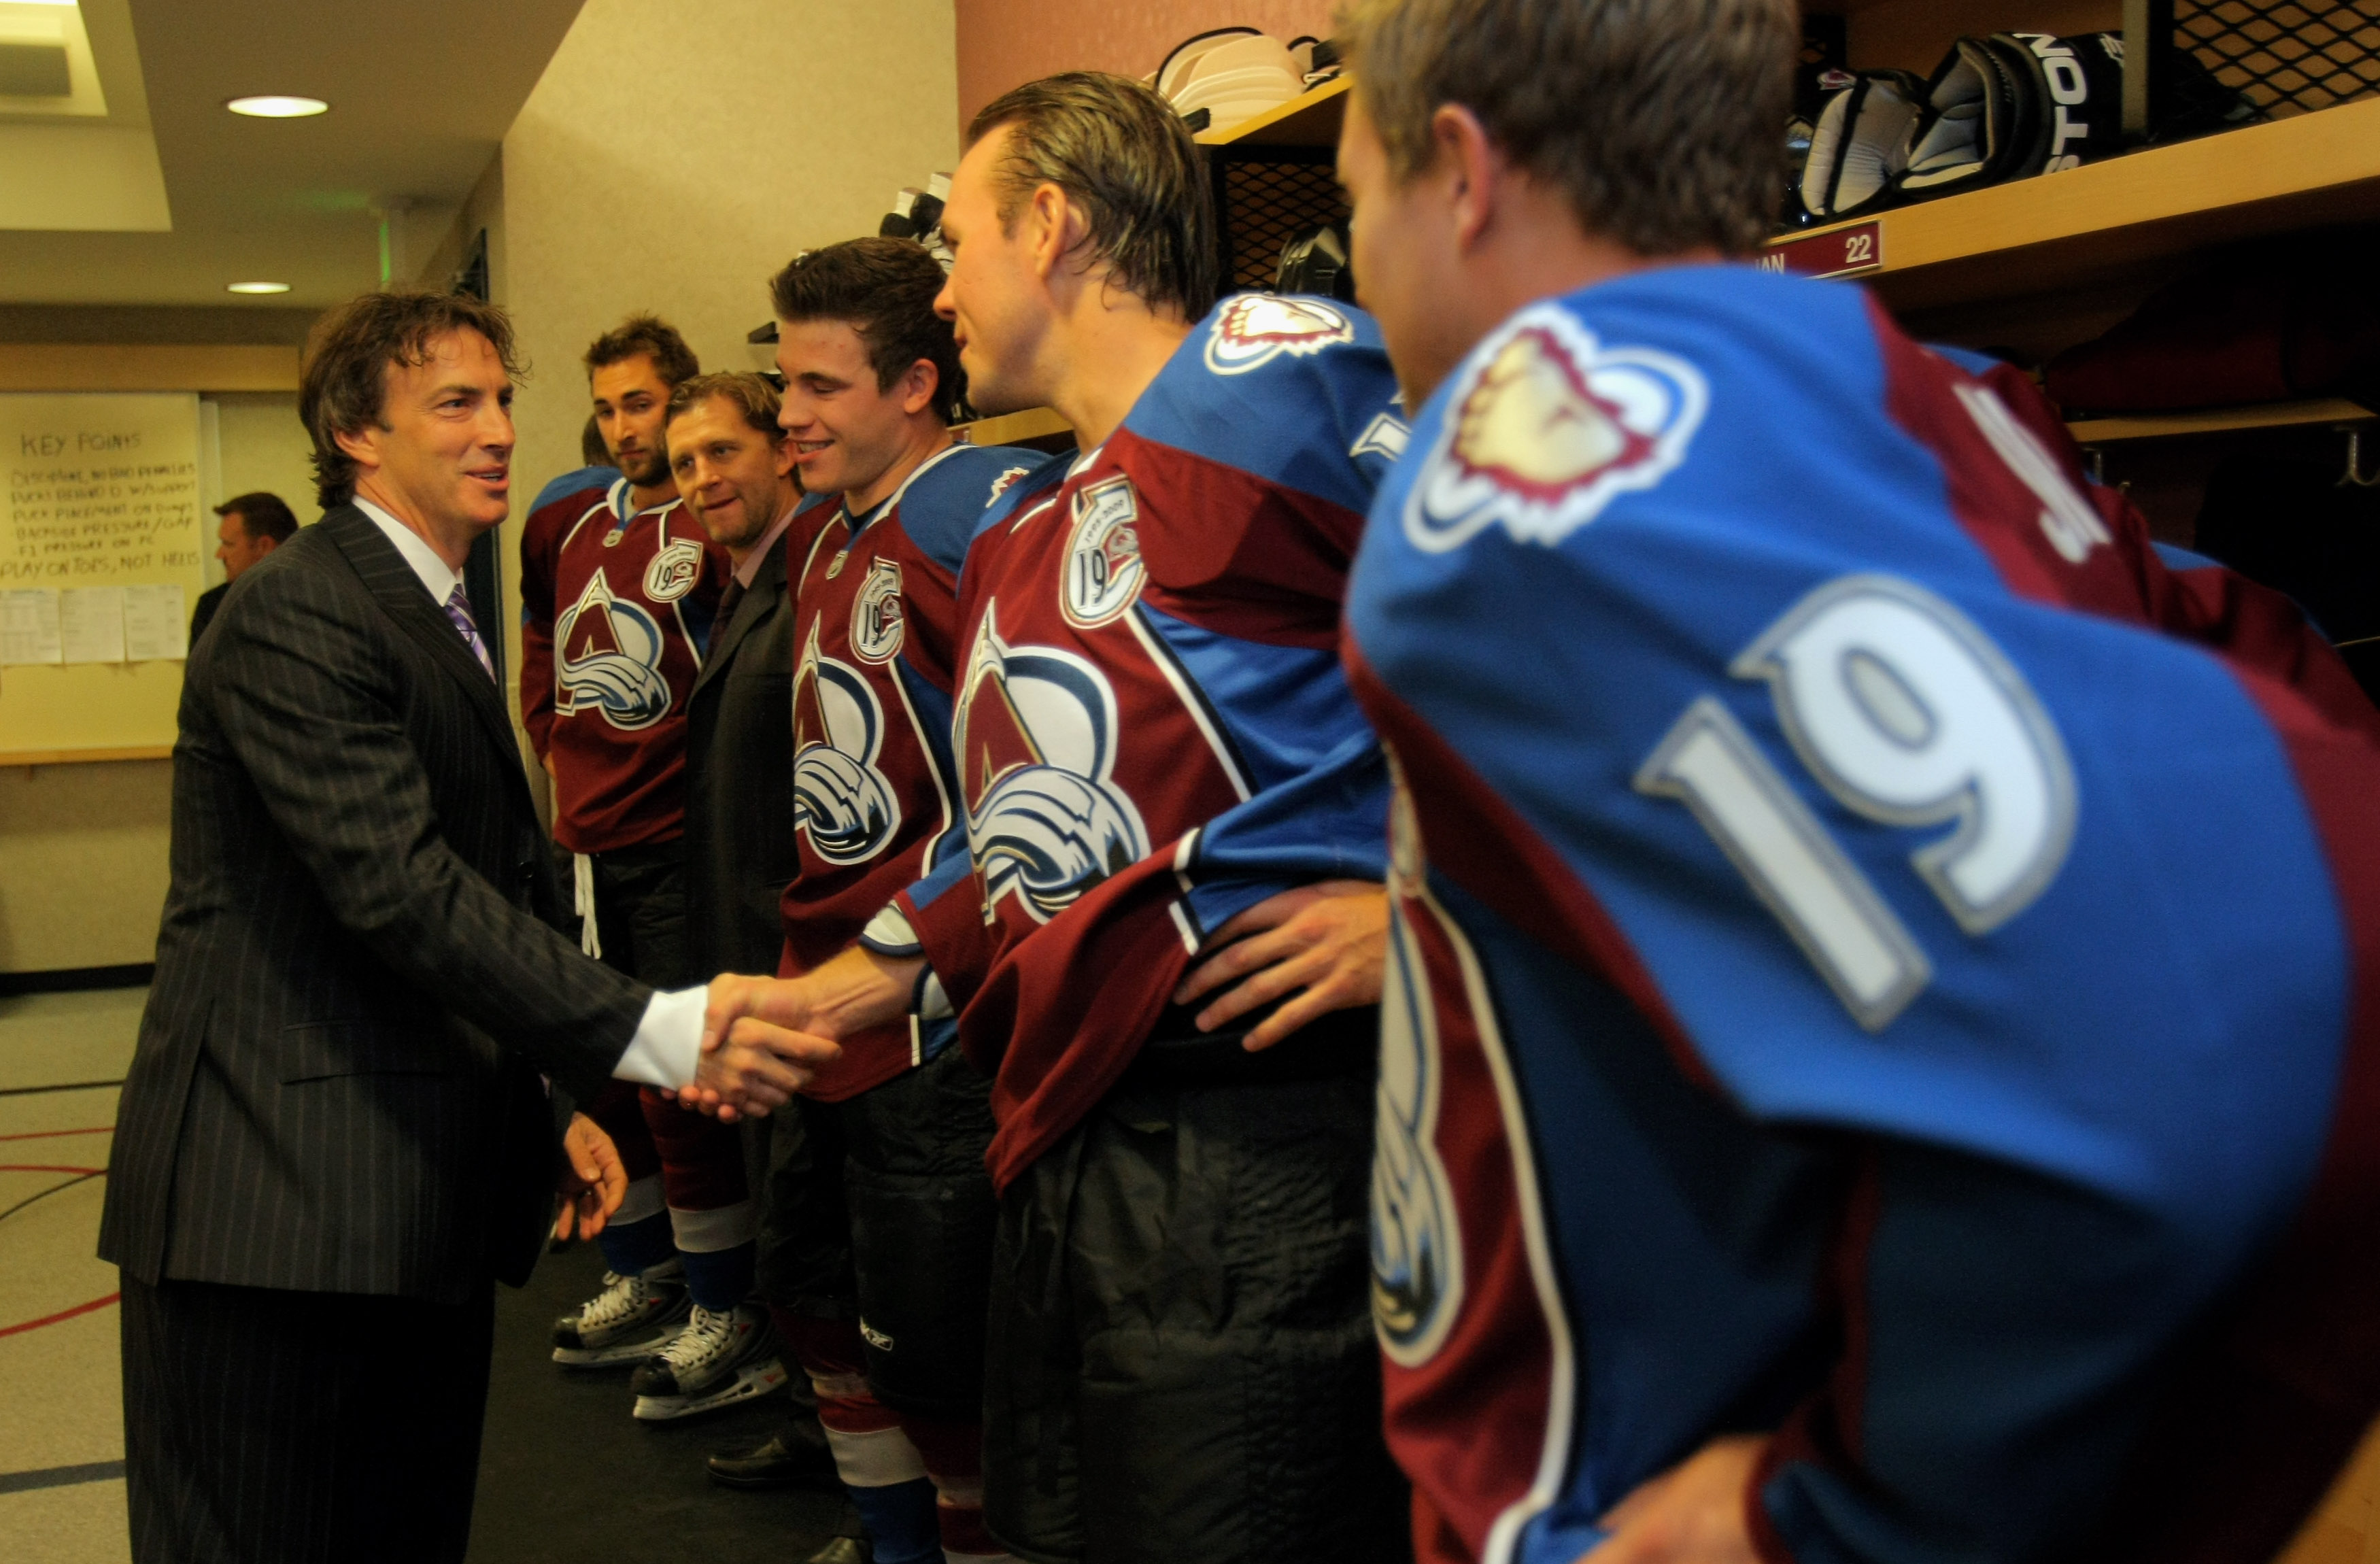 DENVER - OCTOBER 01:  Joe Sakic shakes the hand of Scott Hannan as he greets all the players of the Colorado Avalanche in the locker room on the night when Sakic's jersey was retired at the Pepsi Center on October 1, 2009 in Denver, Colorado.  (Photo by D